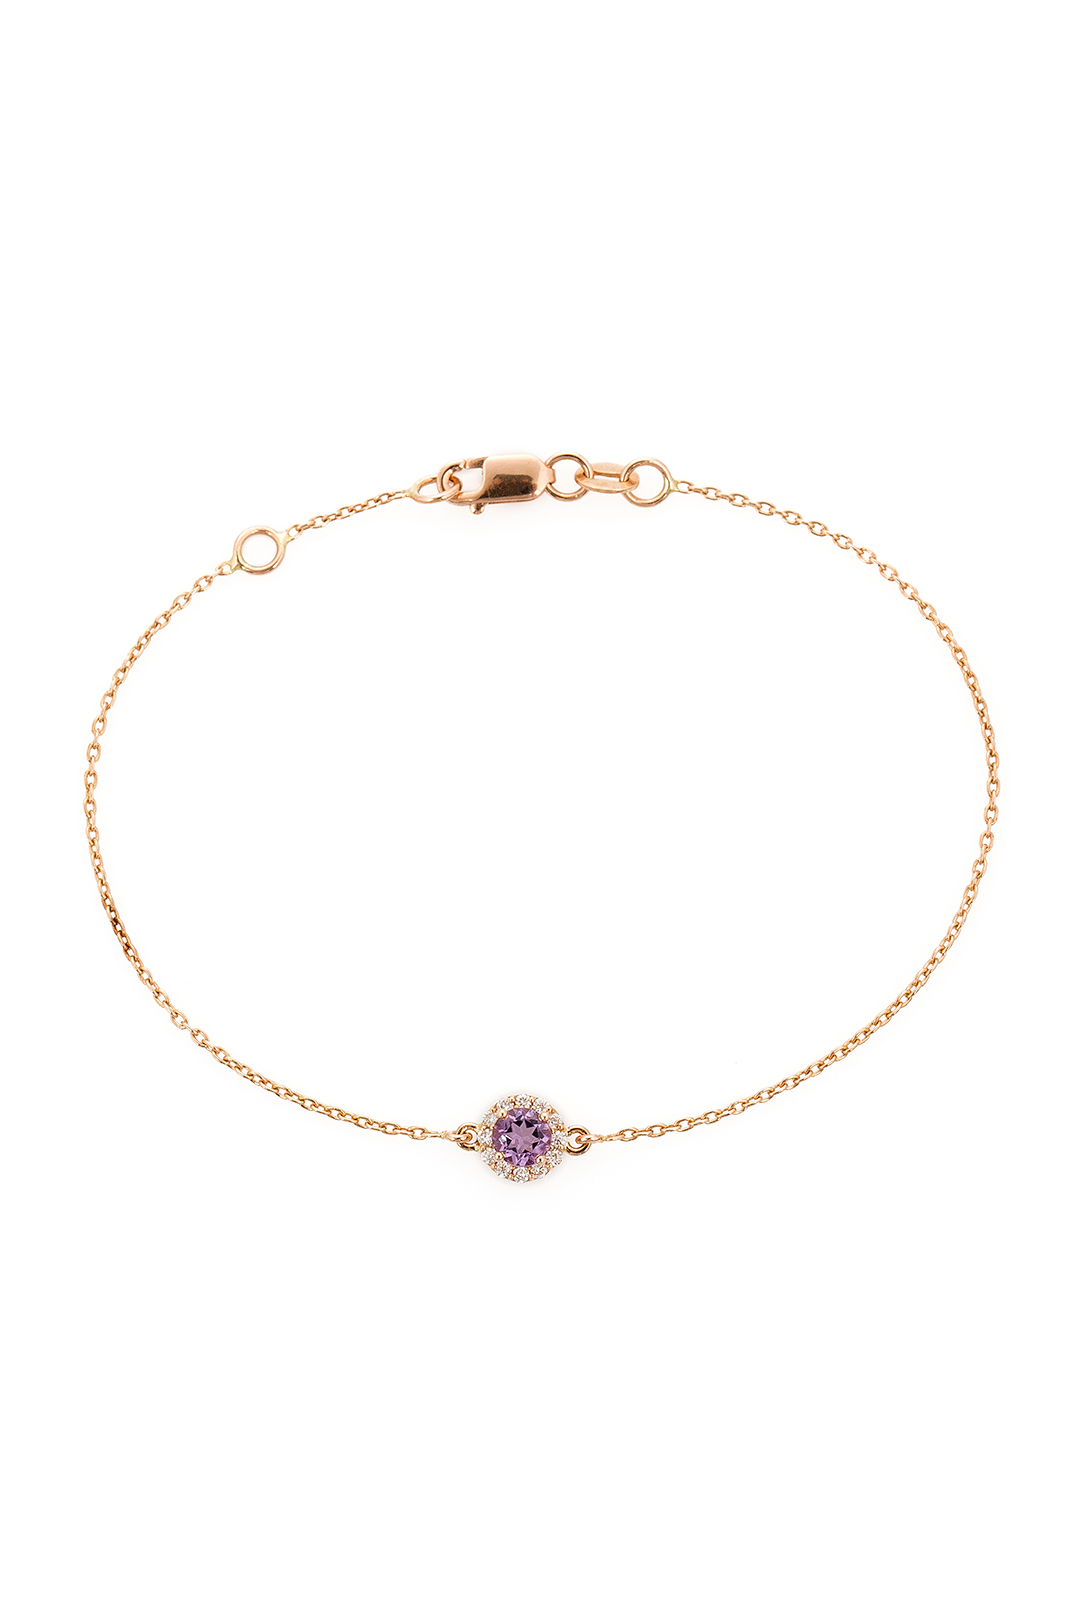 ROUND AMETHYST AND DIAMOND BRACELET